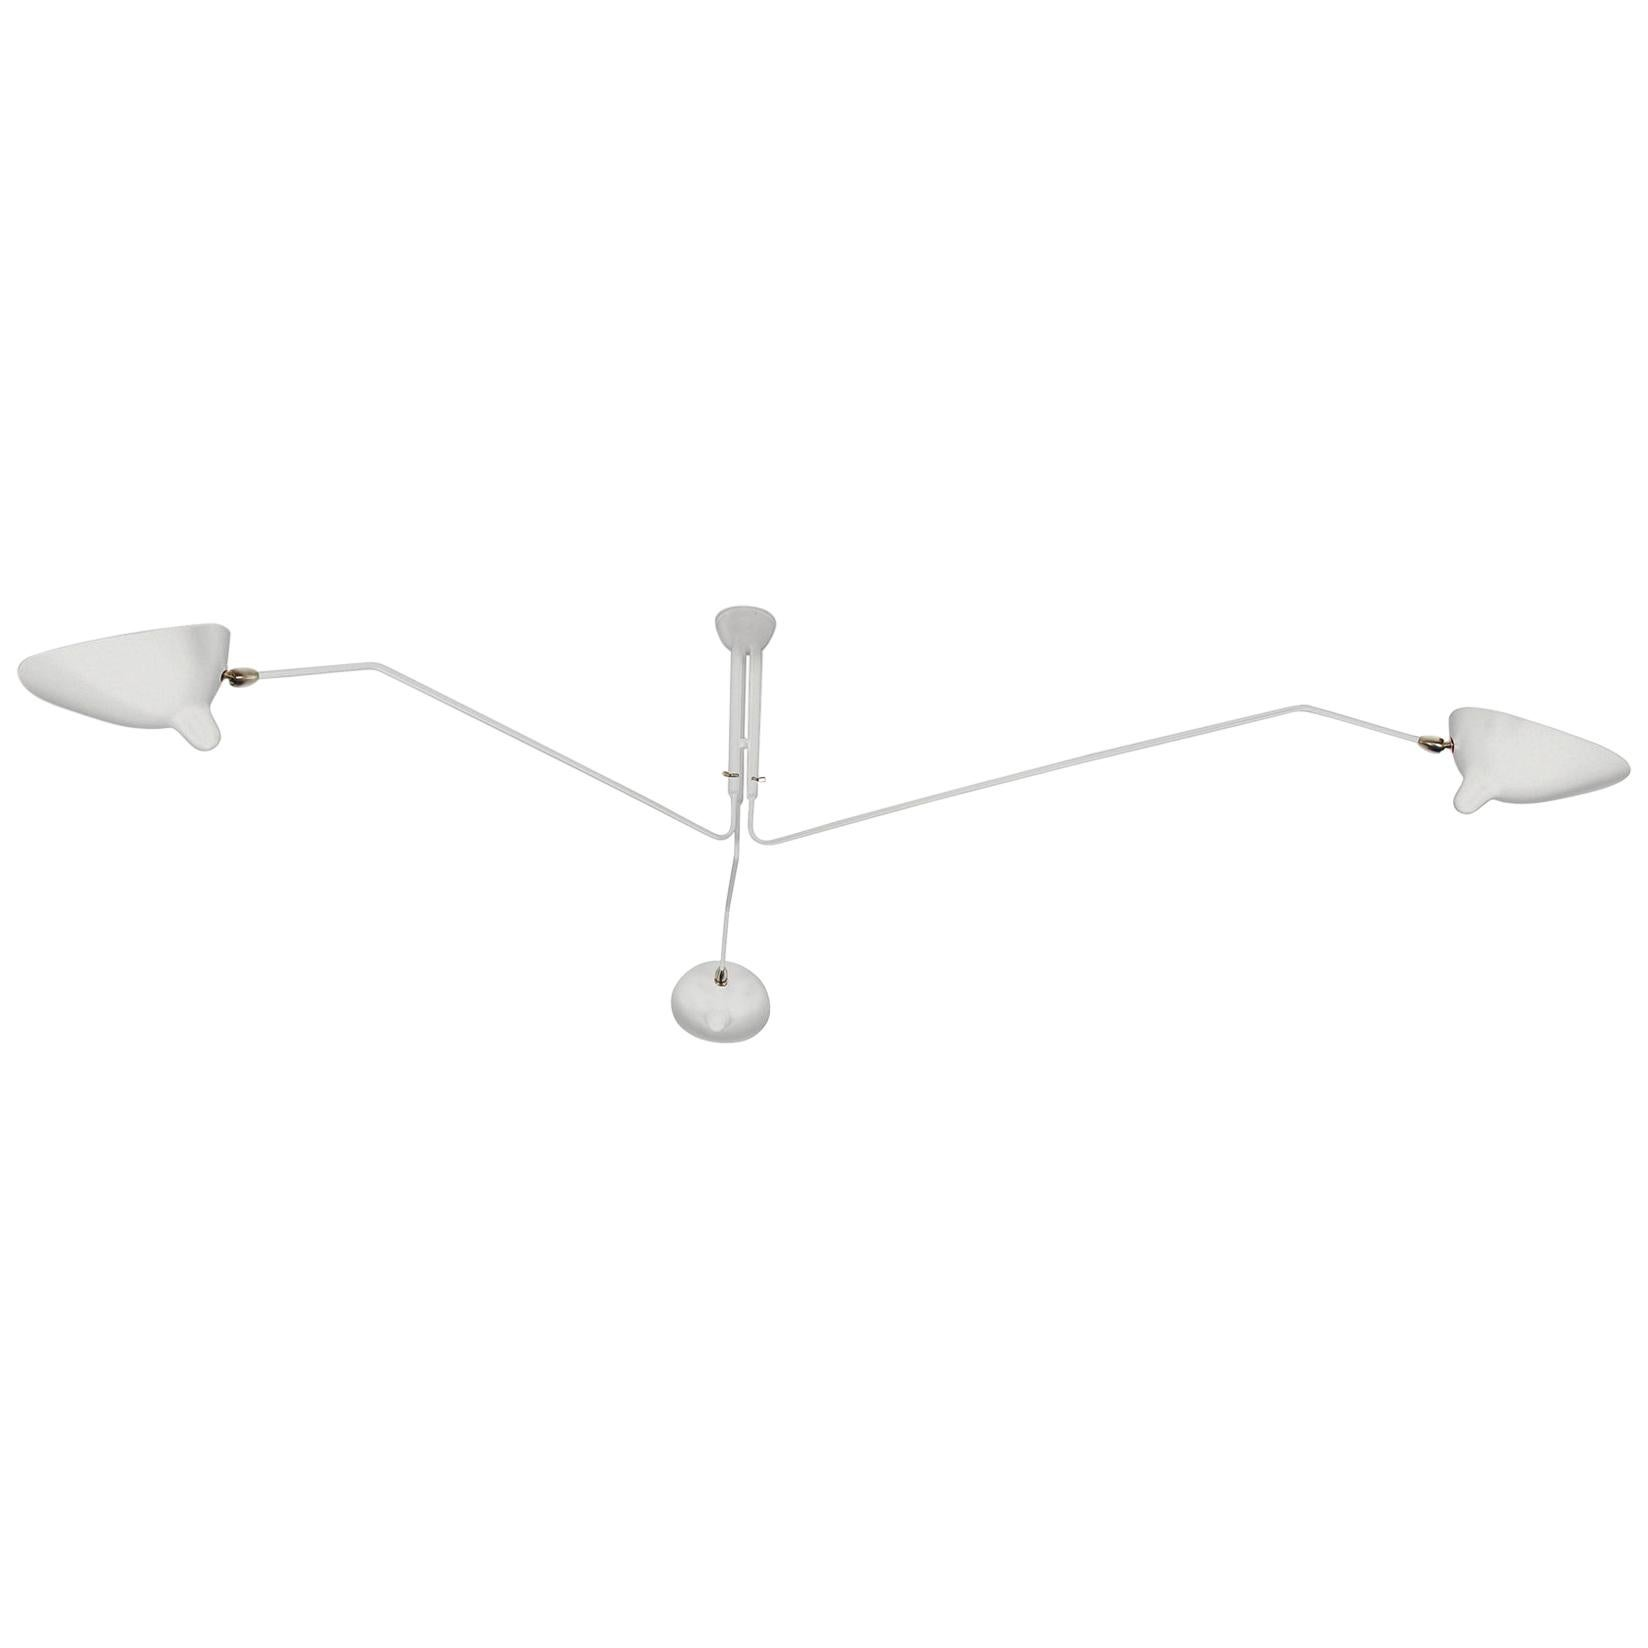 Serge Mouille Mid-Century Modern White Three Rotating Arms Ceiling Lamp